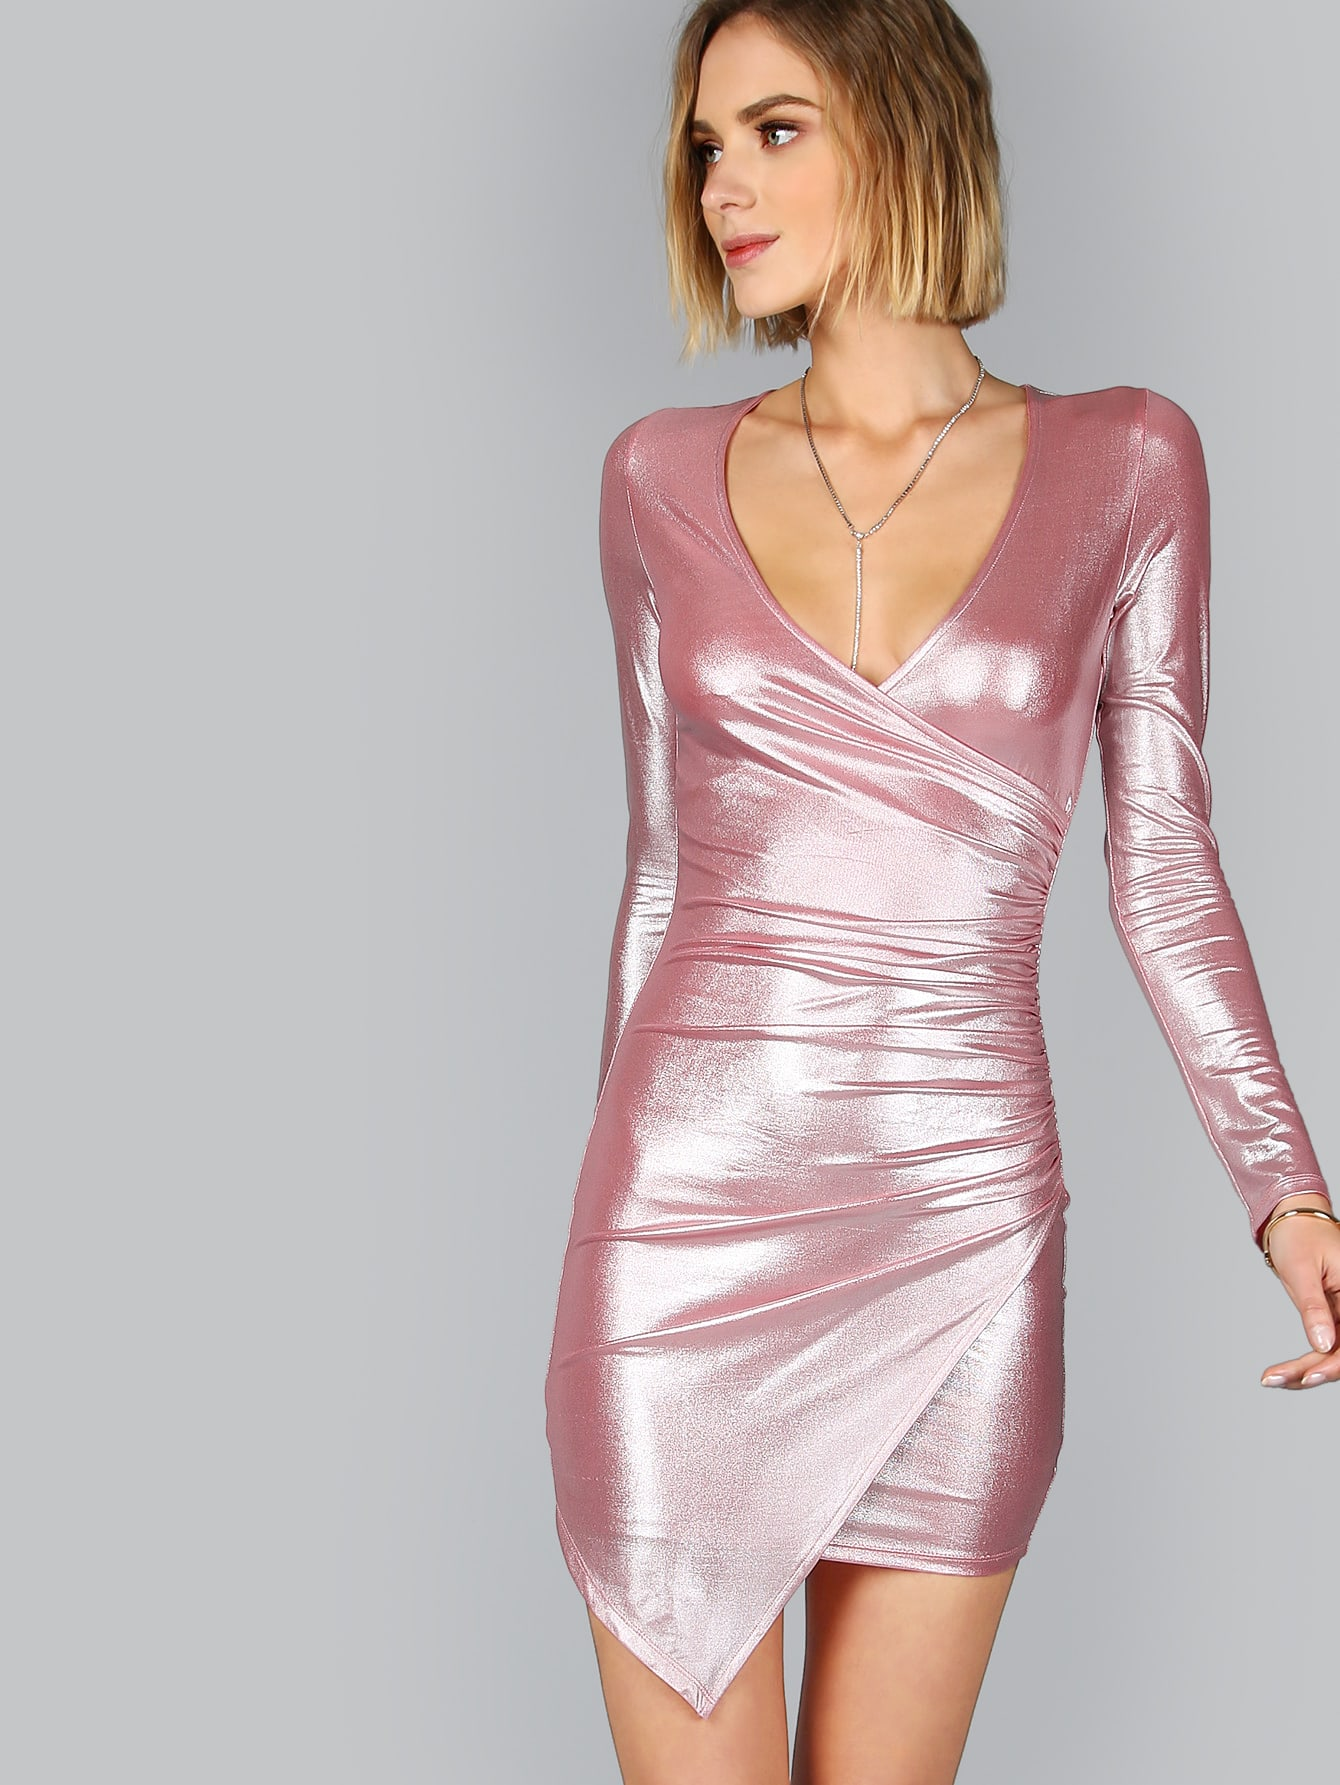 Metallic Pink Ruched Surplice Wrap Asymmetric Dress -SheIn(Sheinside)